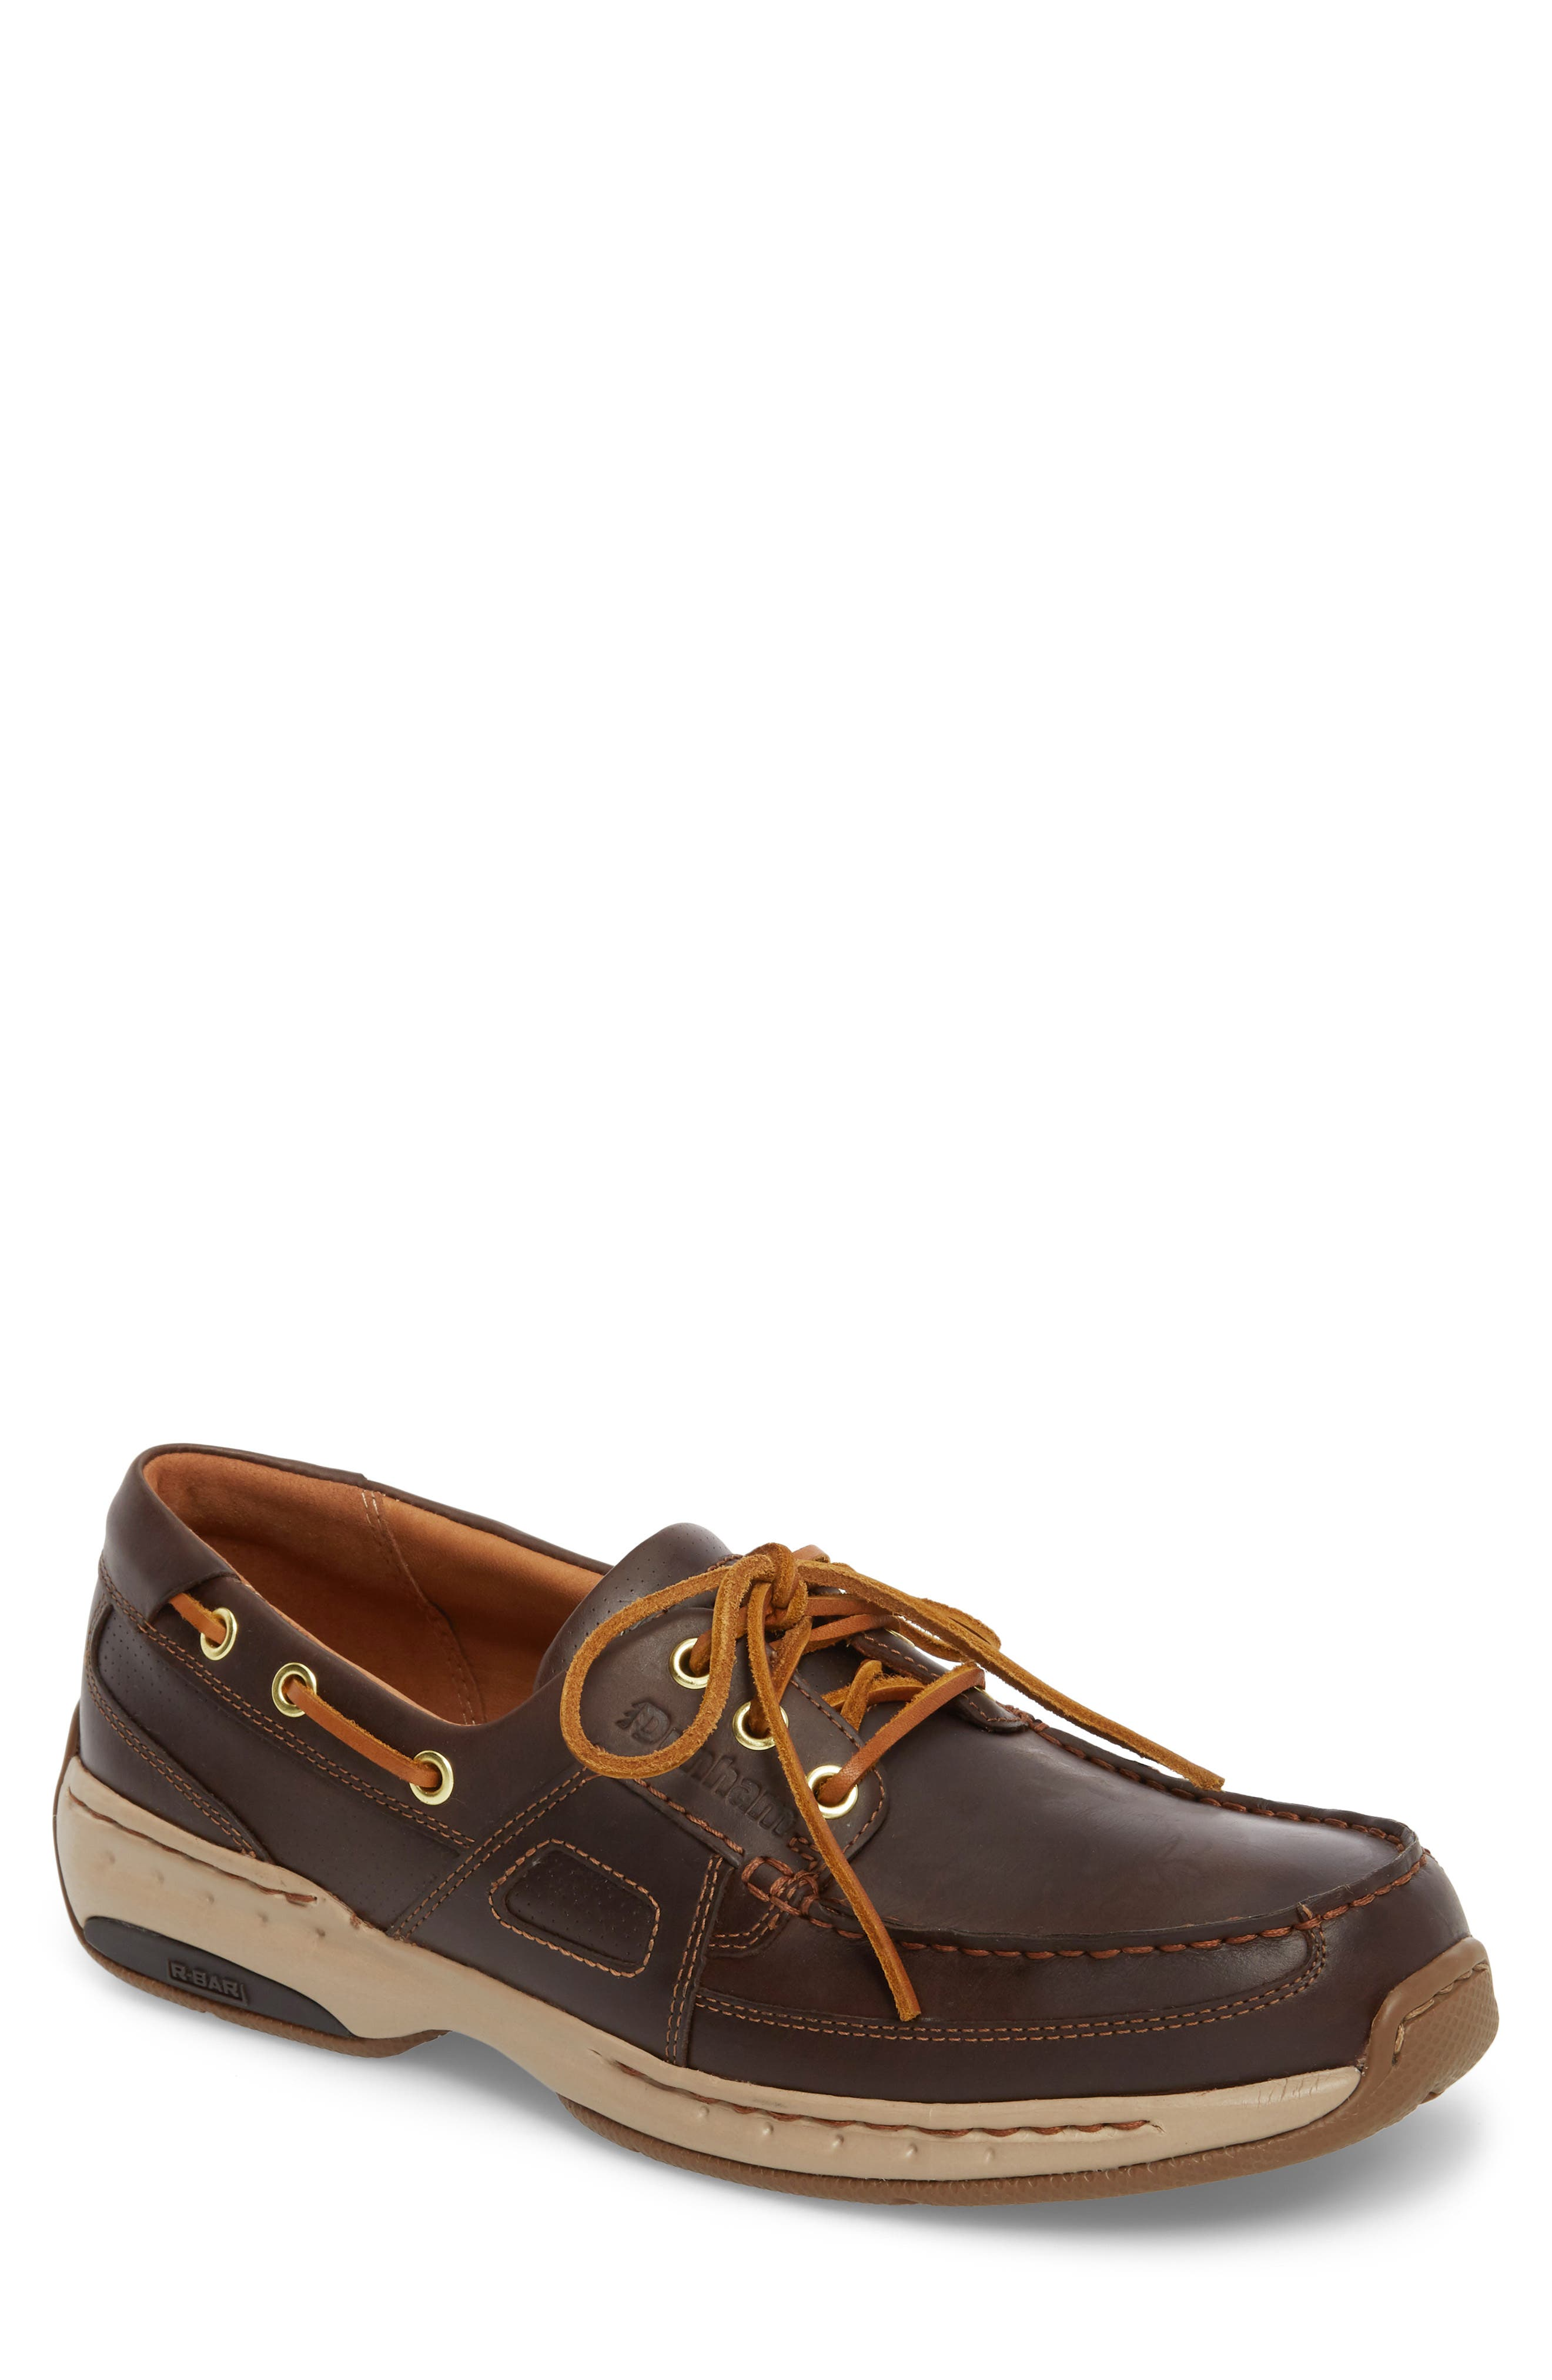 LTD Water Resistant Boat Shoe,                         Main,                         color, TAN LEATHER